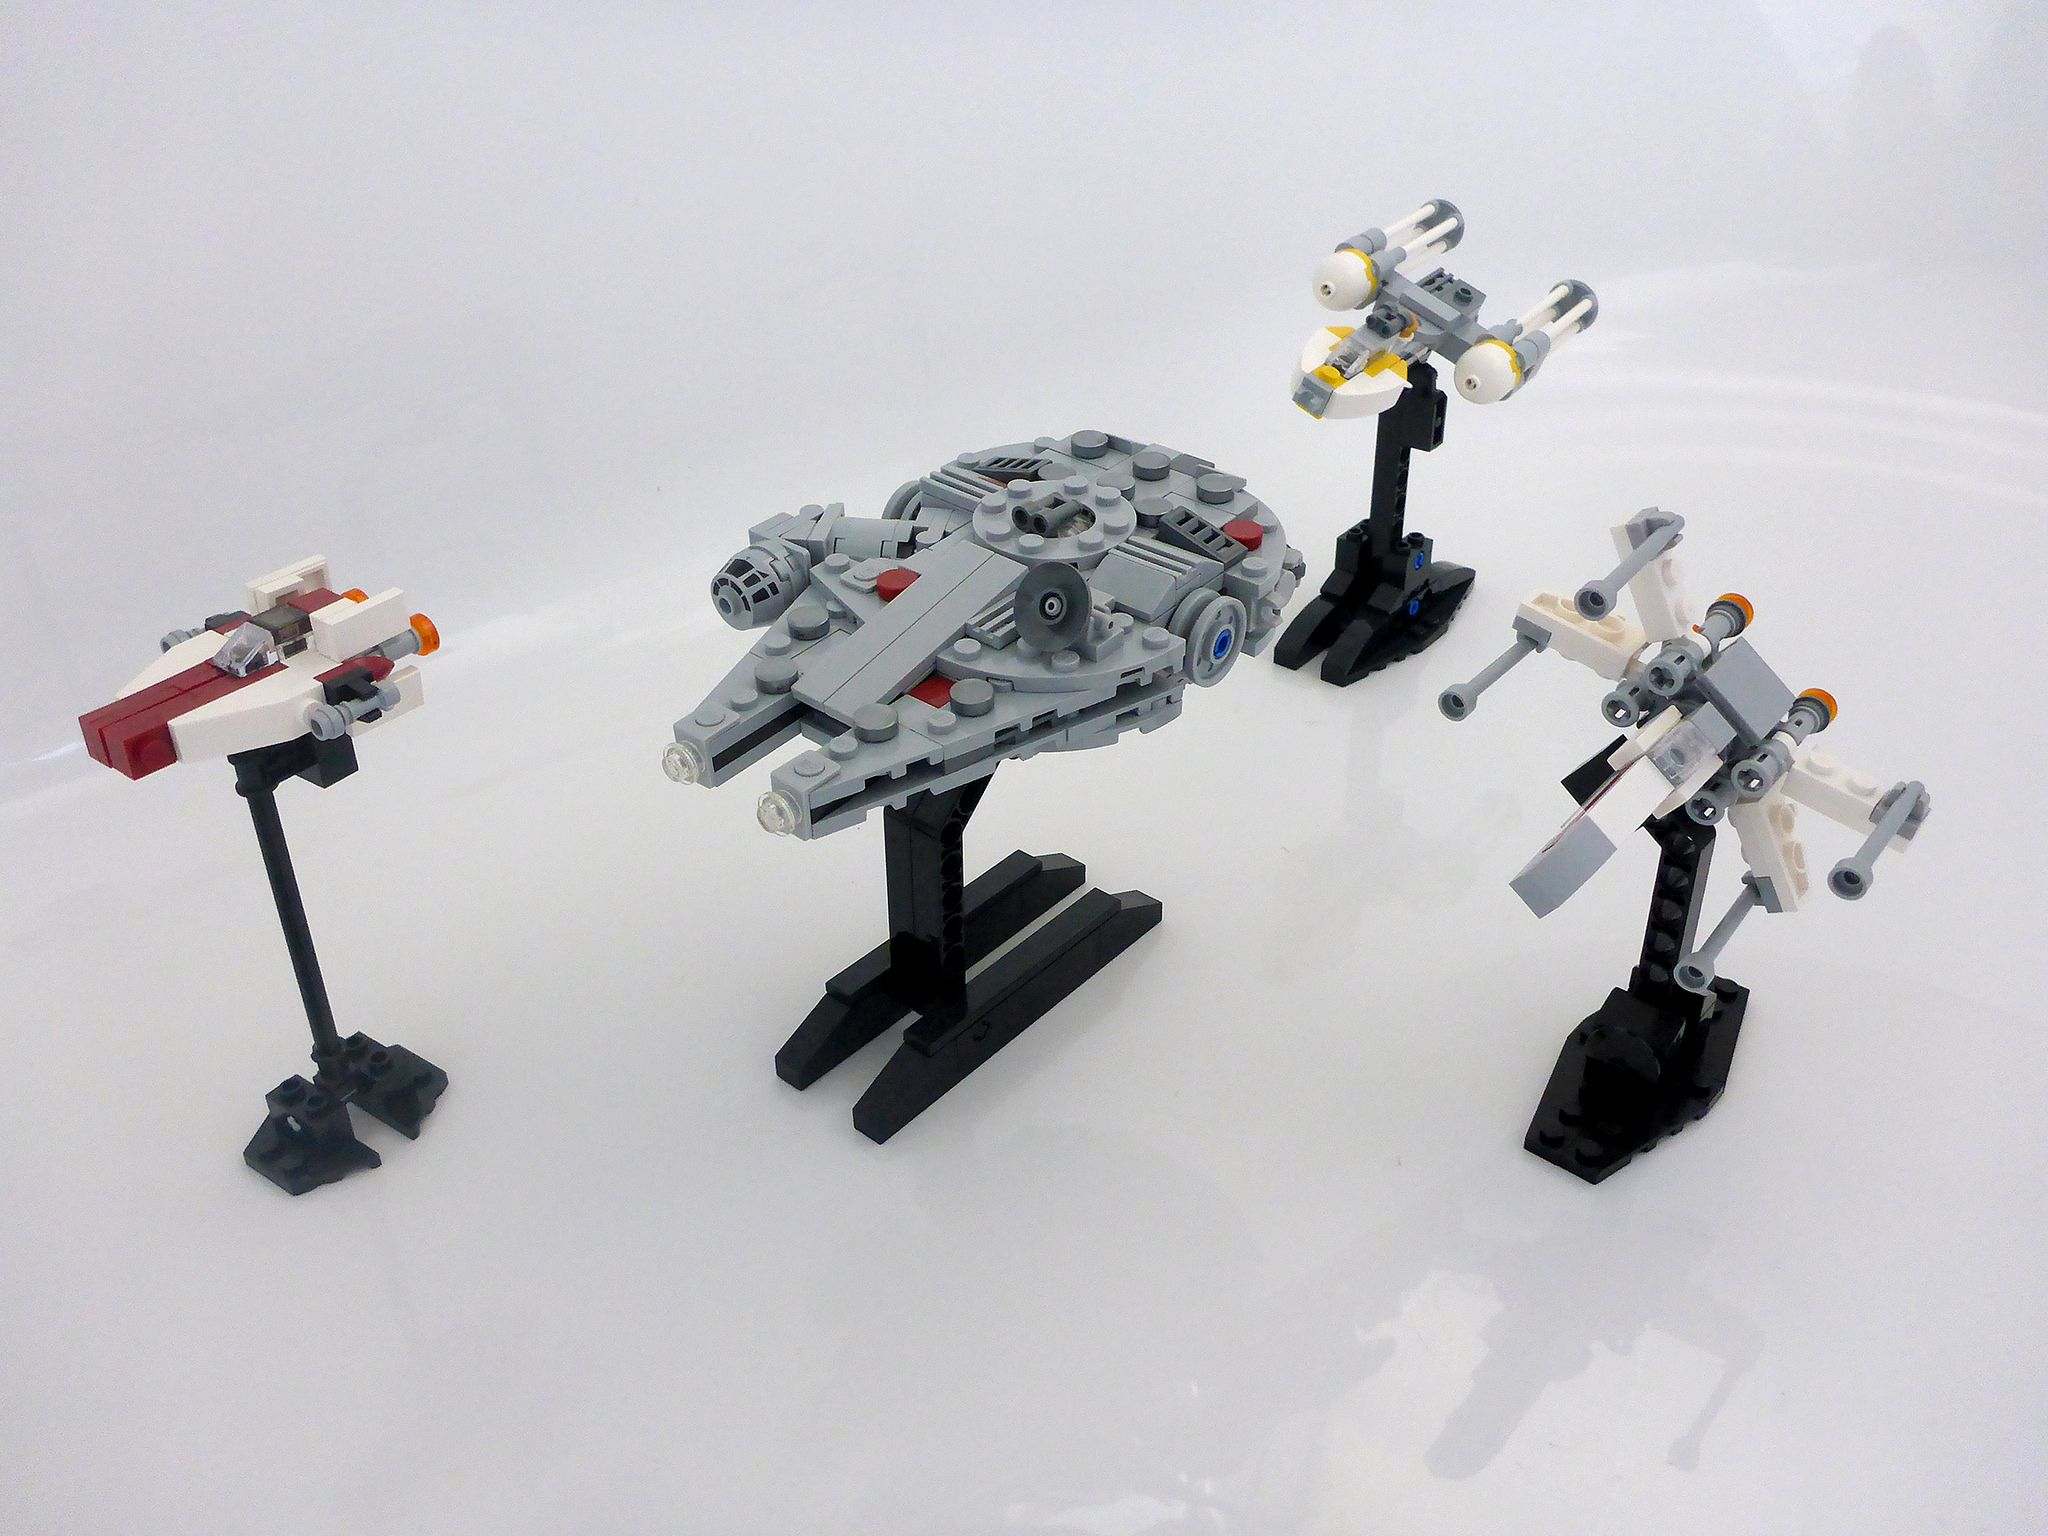 https://flic.kr/p/qRinBu | Star Wars micro fleet | The Millennium Falcon was the first ship I made, after getting the Lego 75030 micro fighter. I really liked the cockpit piece and wanted to use it so that was the starting point. I'm pretty happy with the way it turned out. The other ships were inspired by other micro-scale star wars ships I've seen around the web.